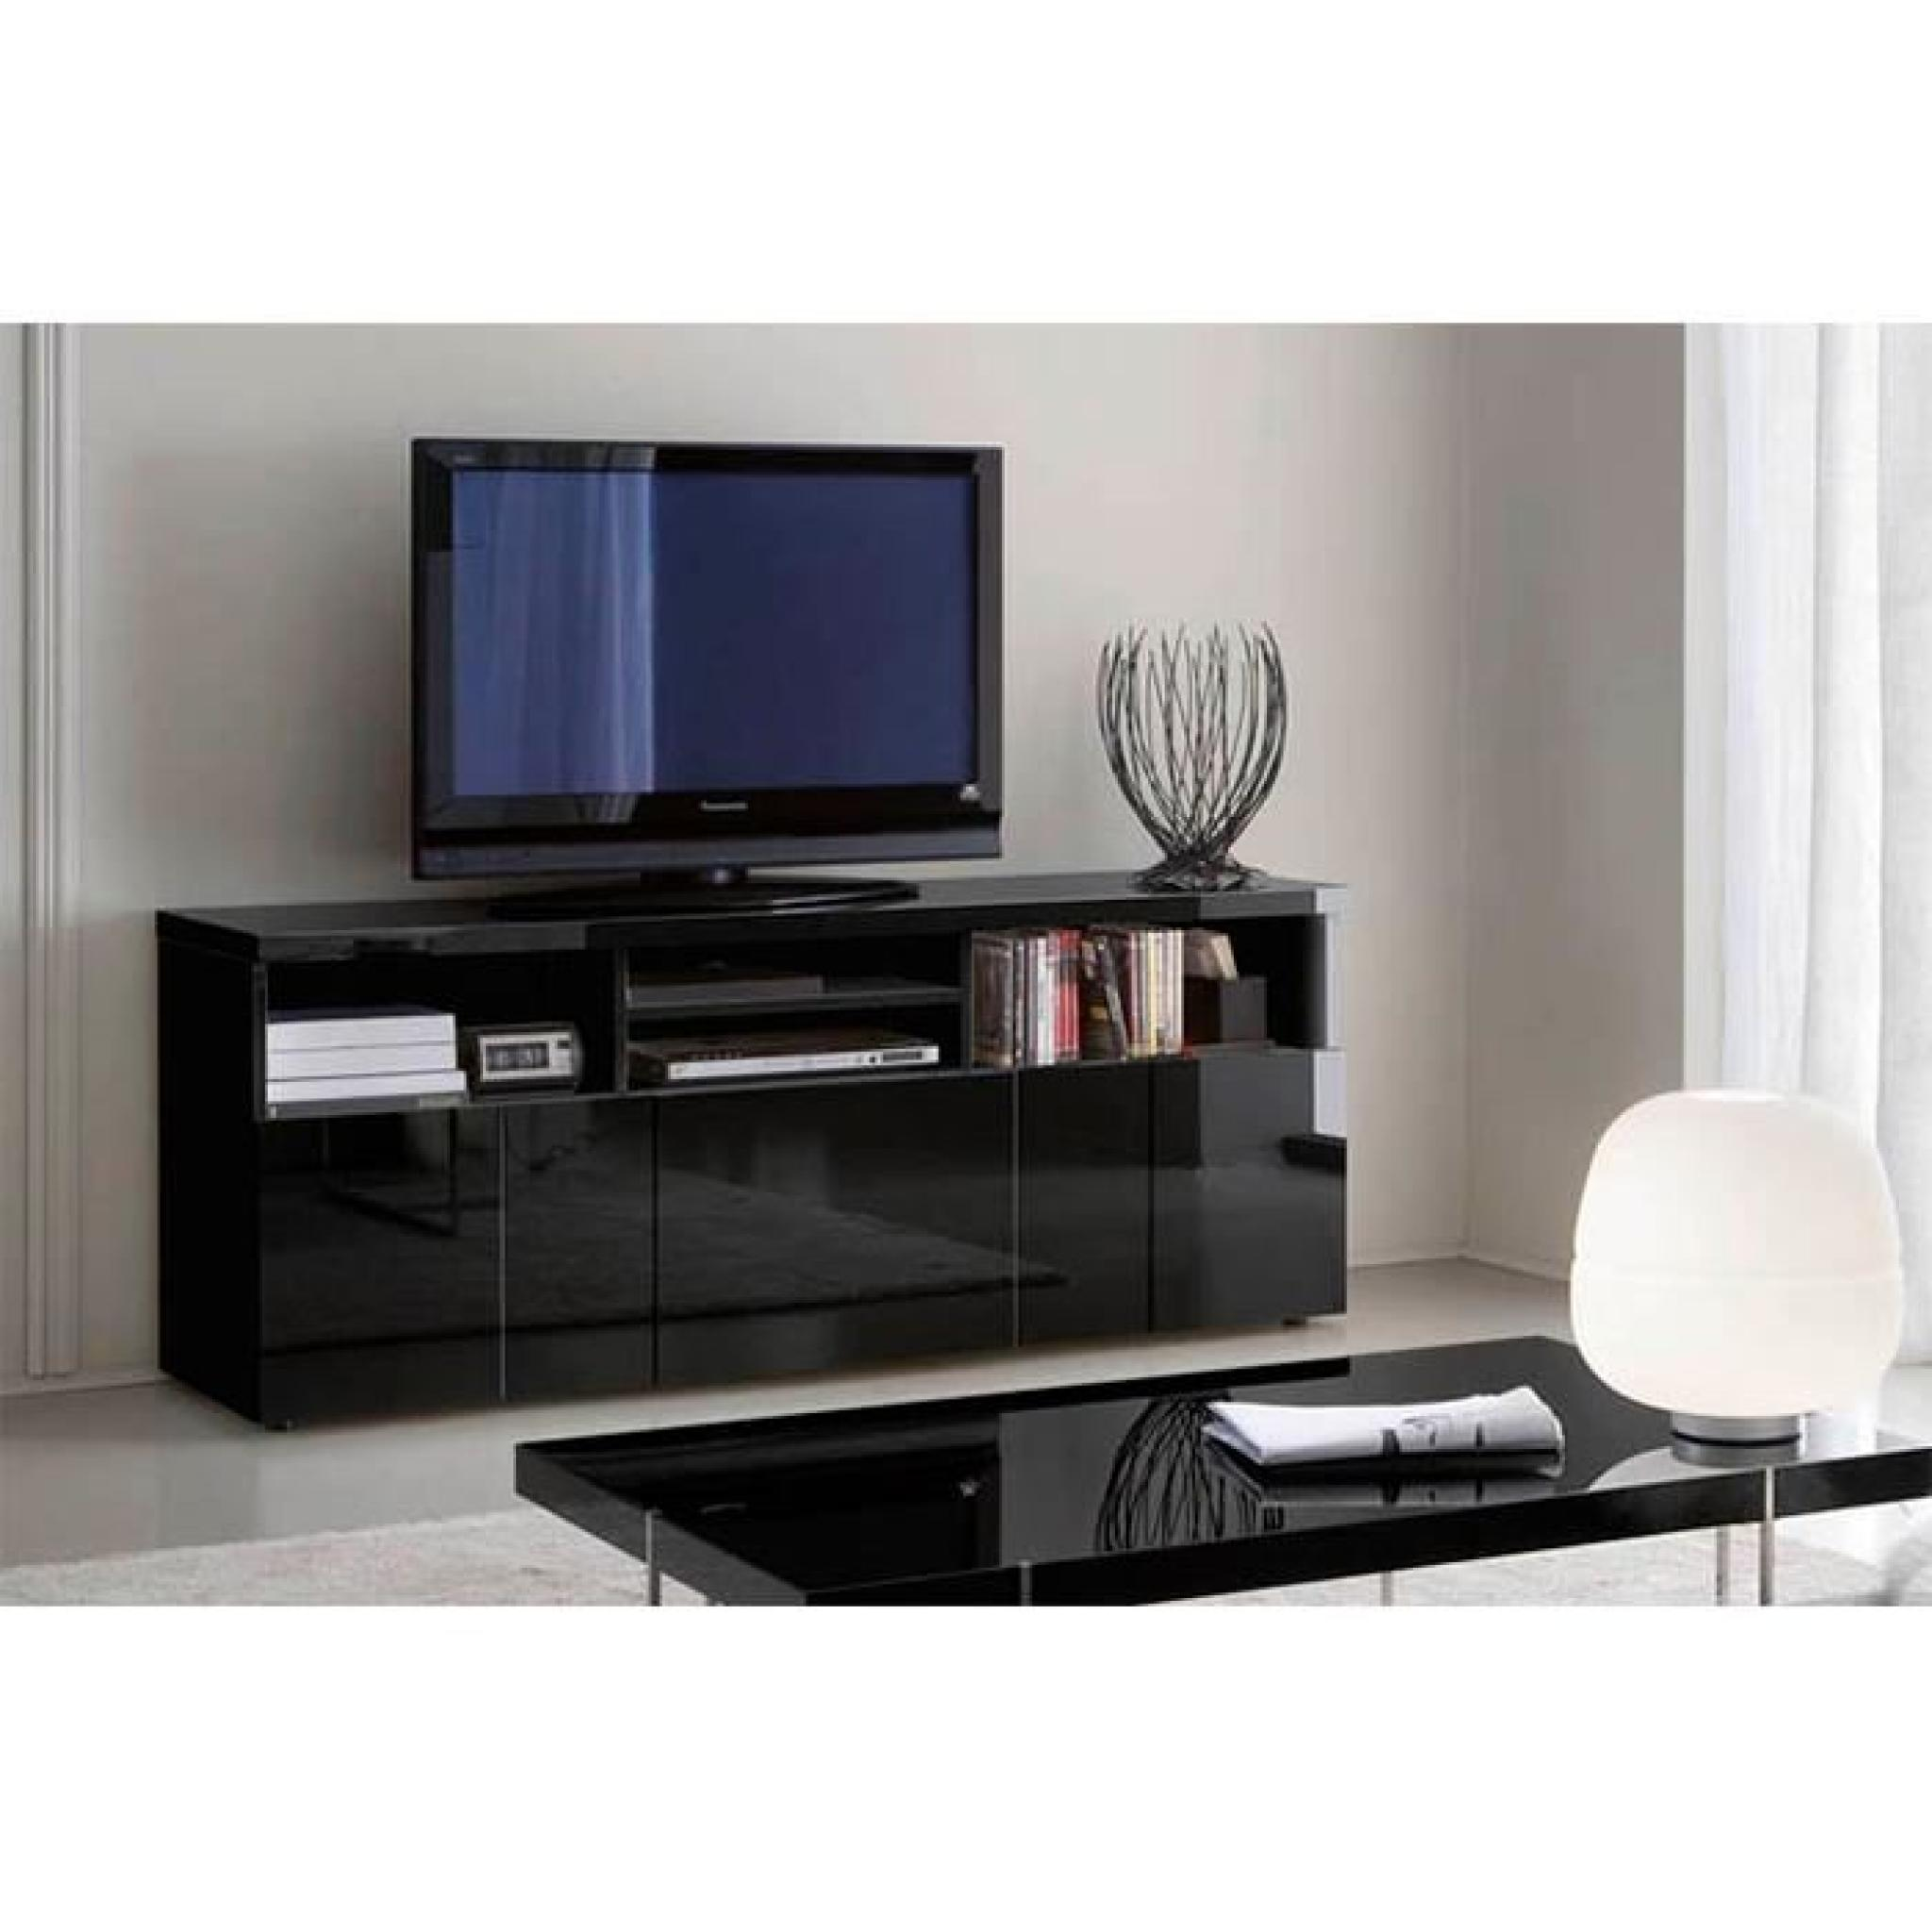 Buffet meuble tv glossy noir 3 portes 4 niches achat for Buffet noir